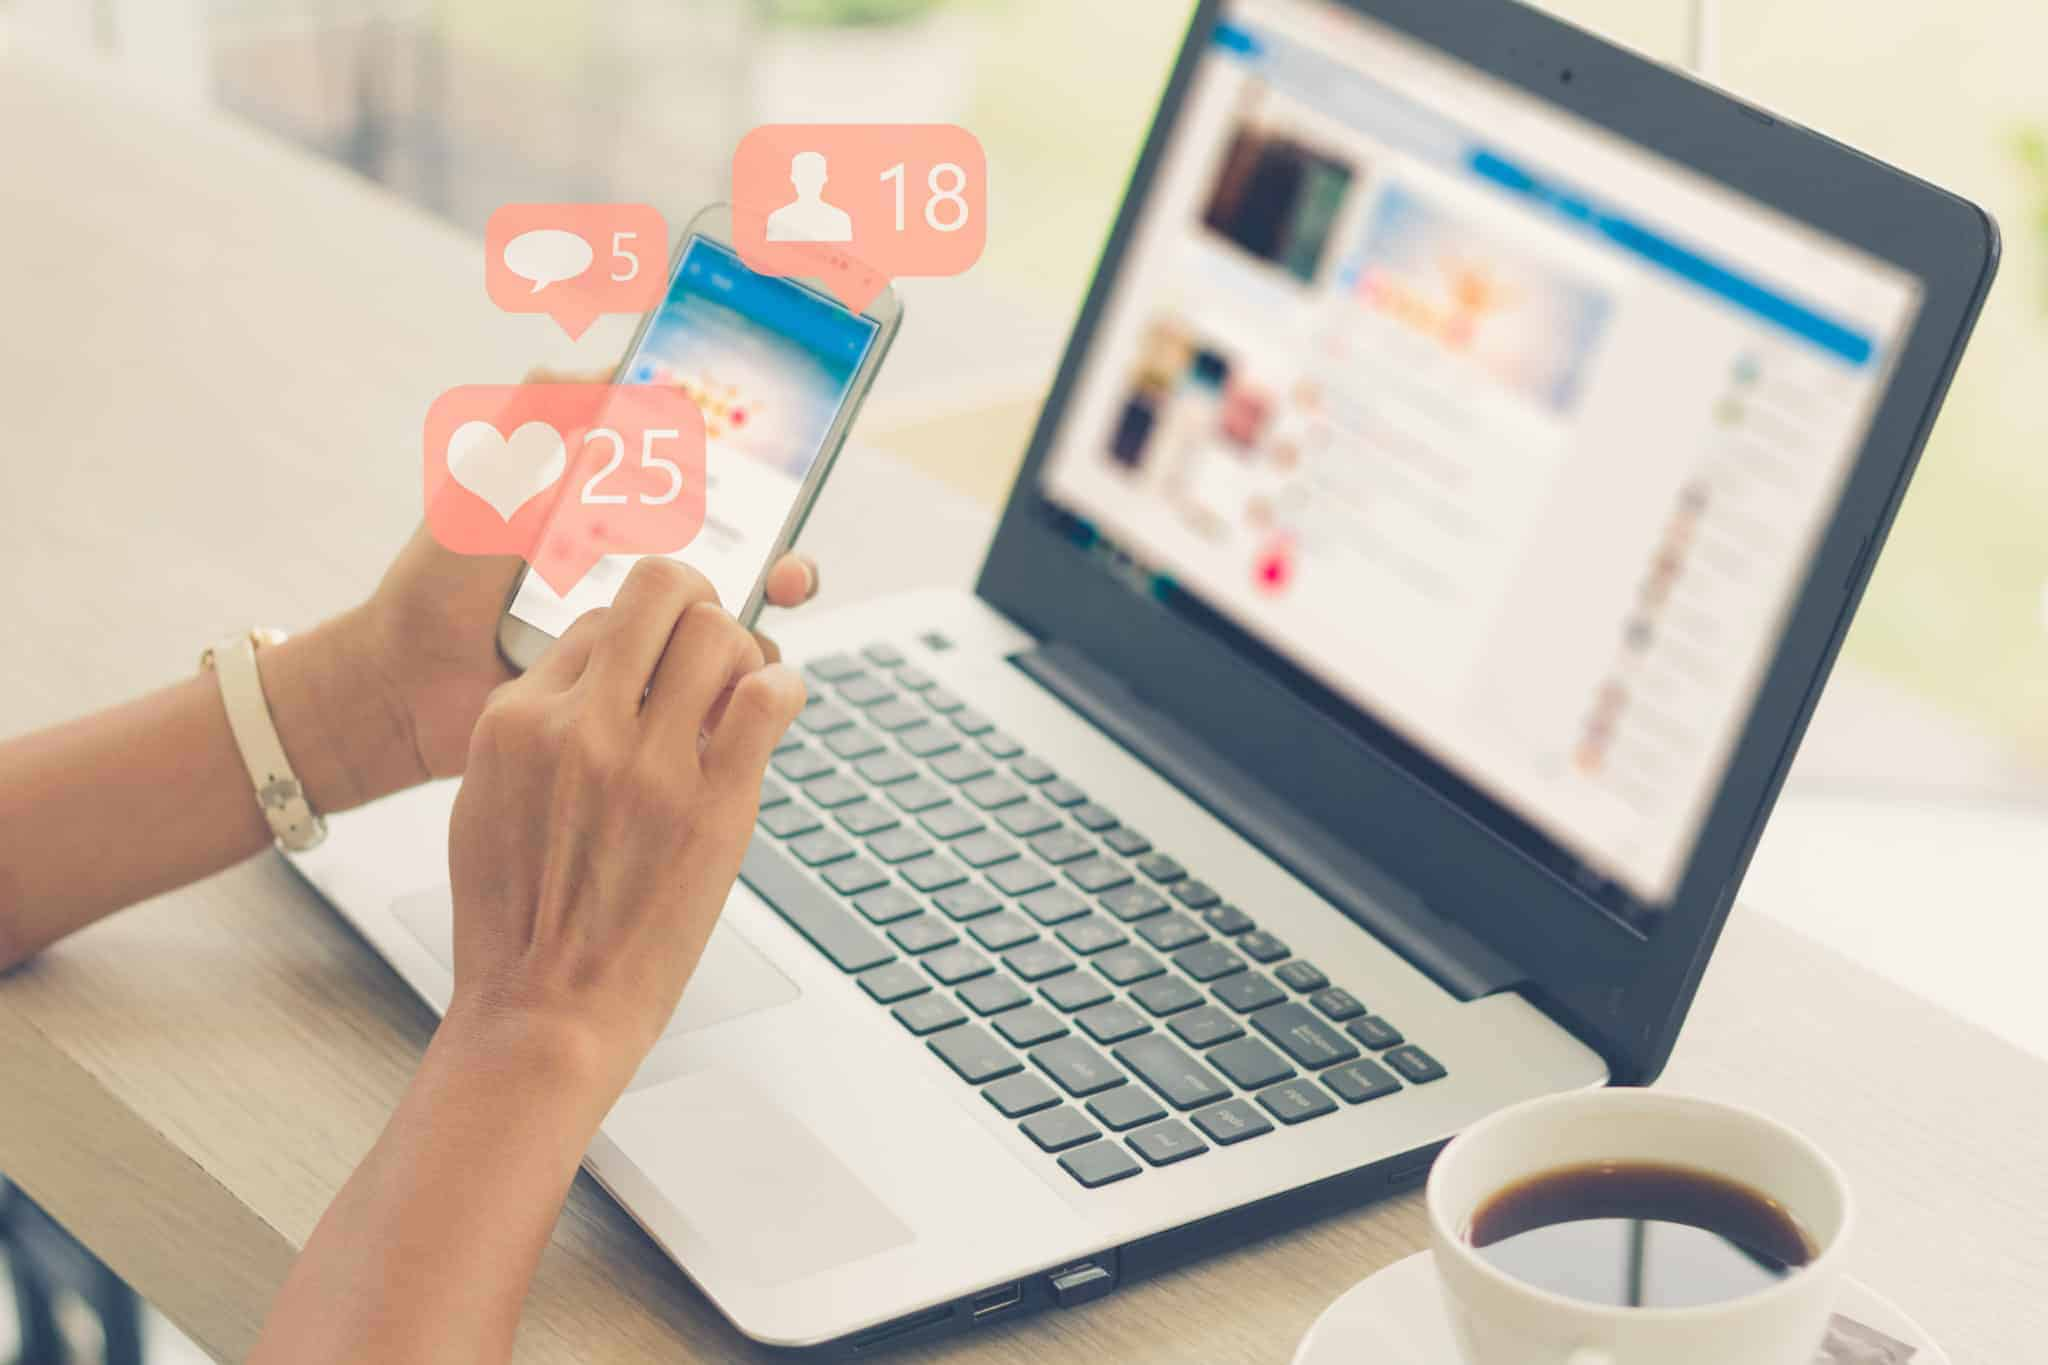 How To Use Social Media To Raise Money